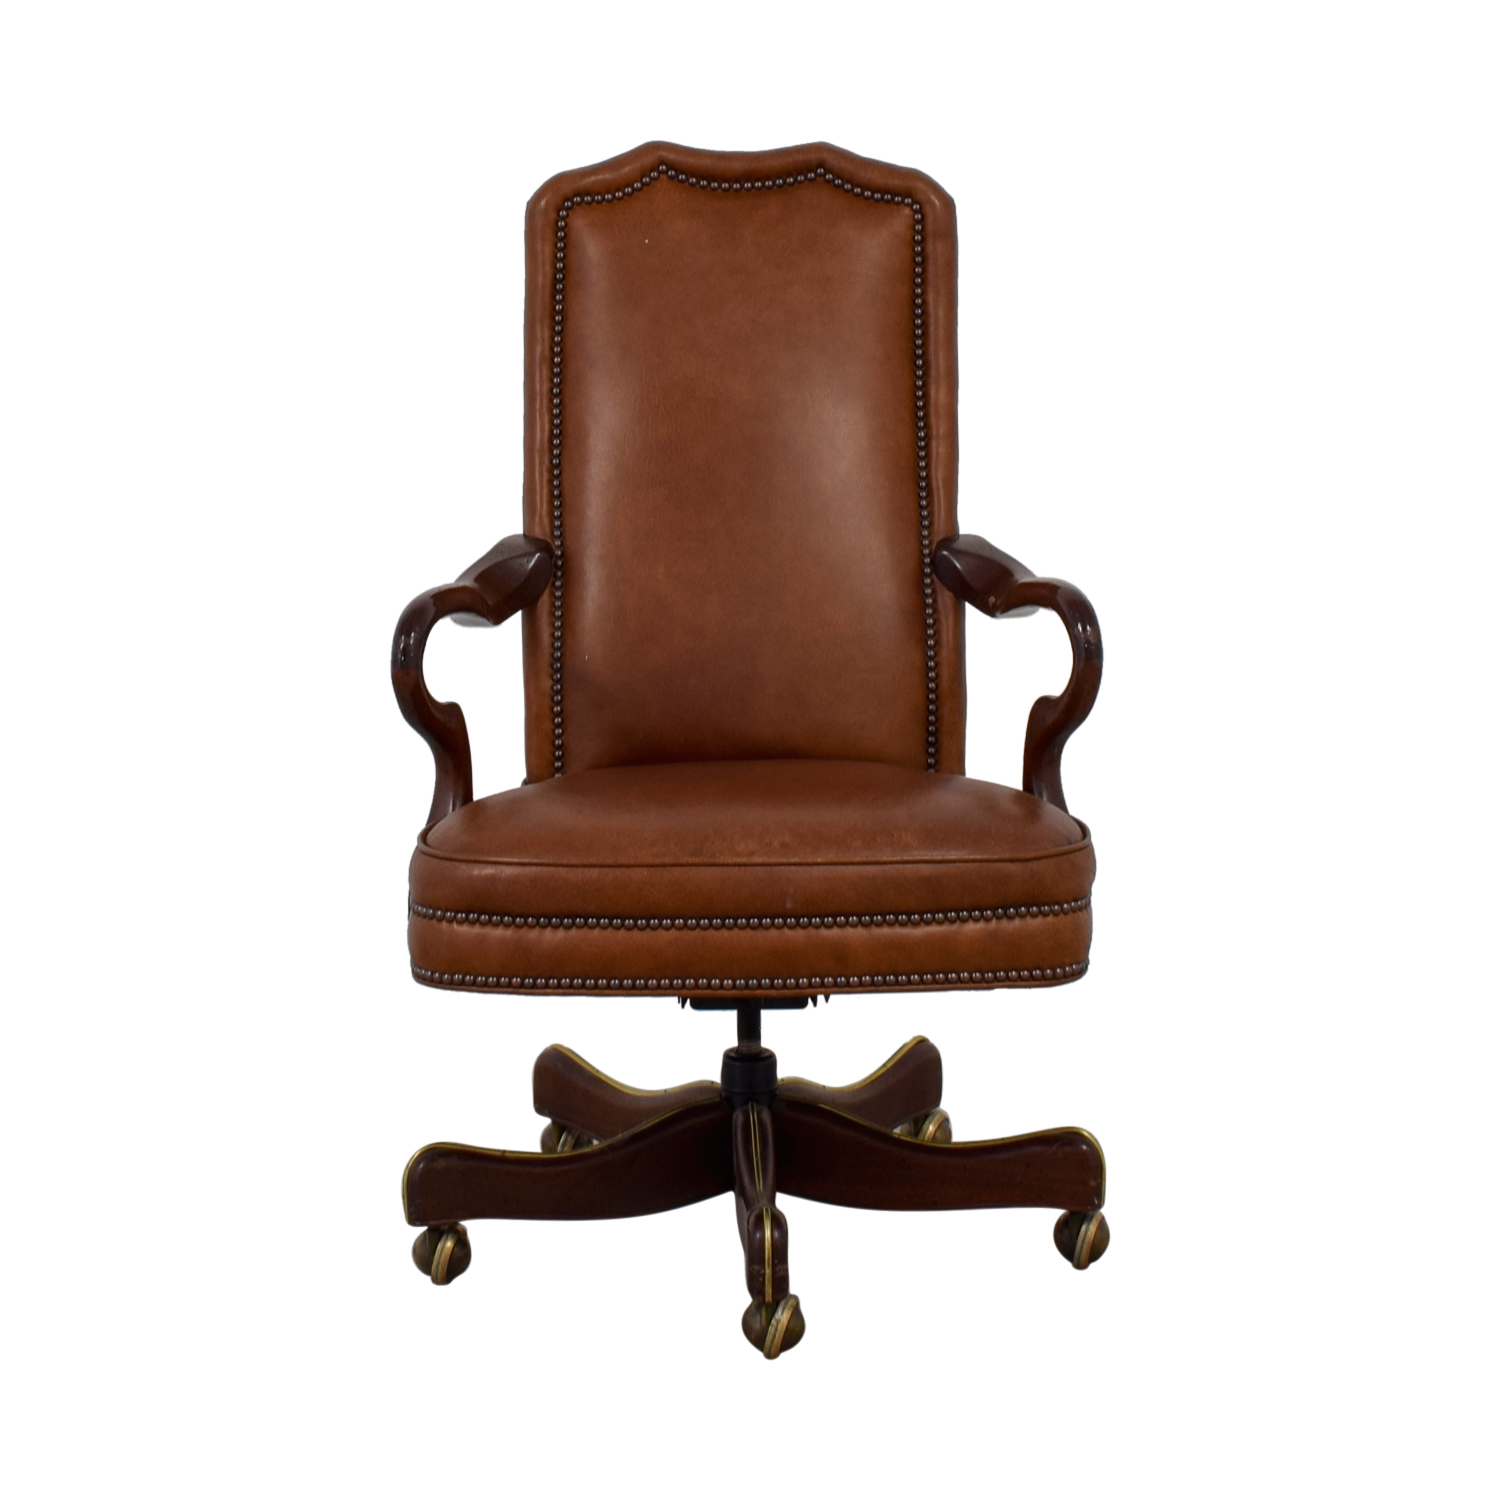 Charles Stewart Company Brown Leather Desk Chair / Chairs